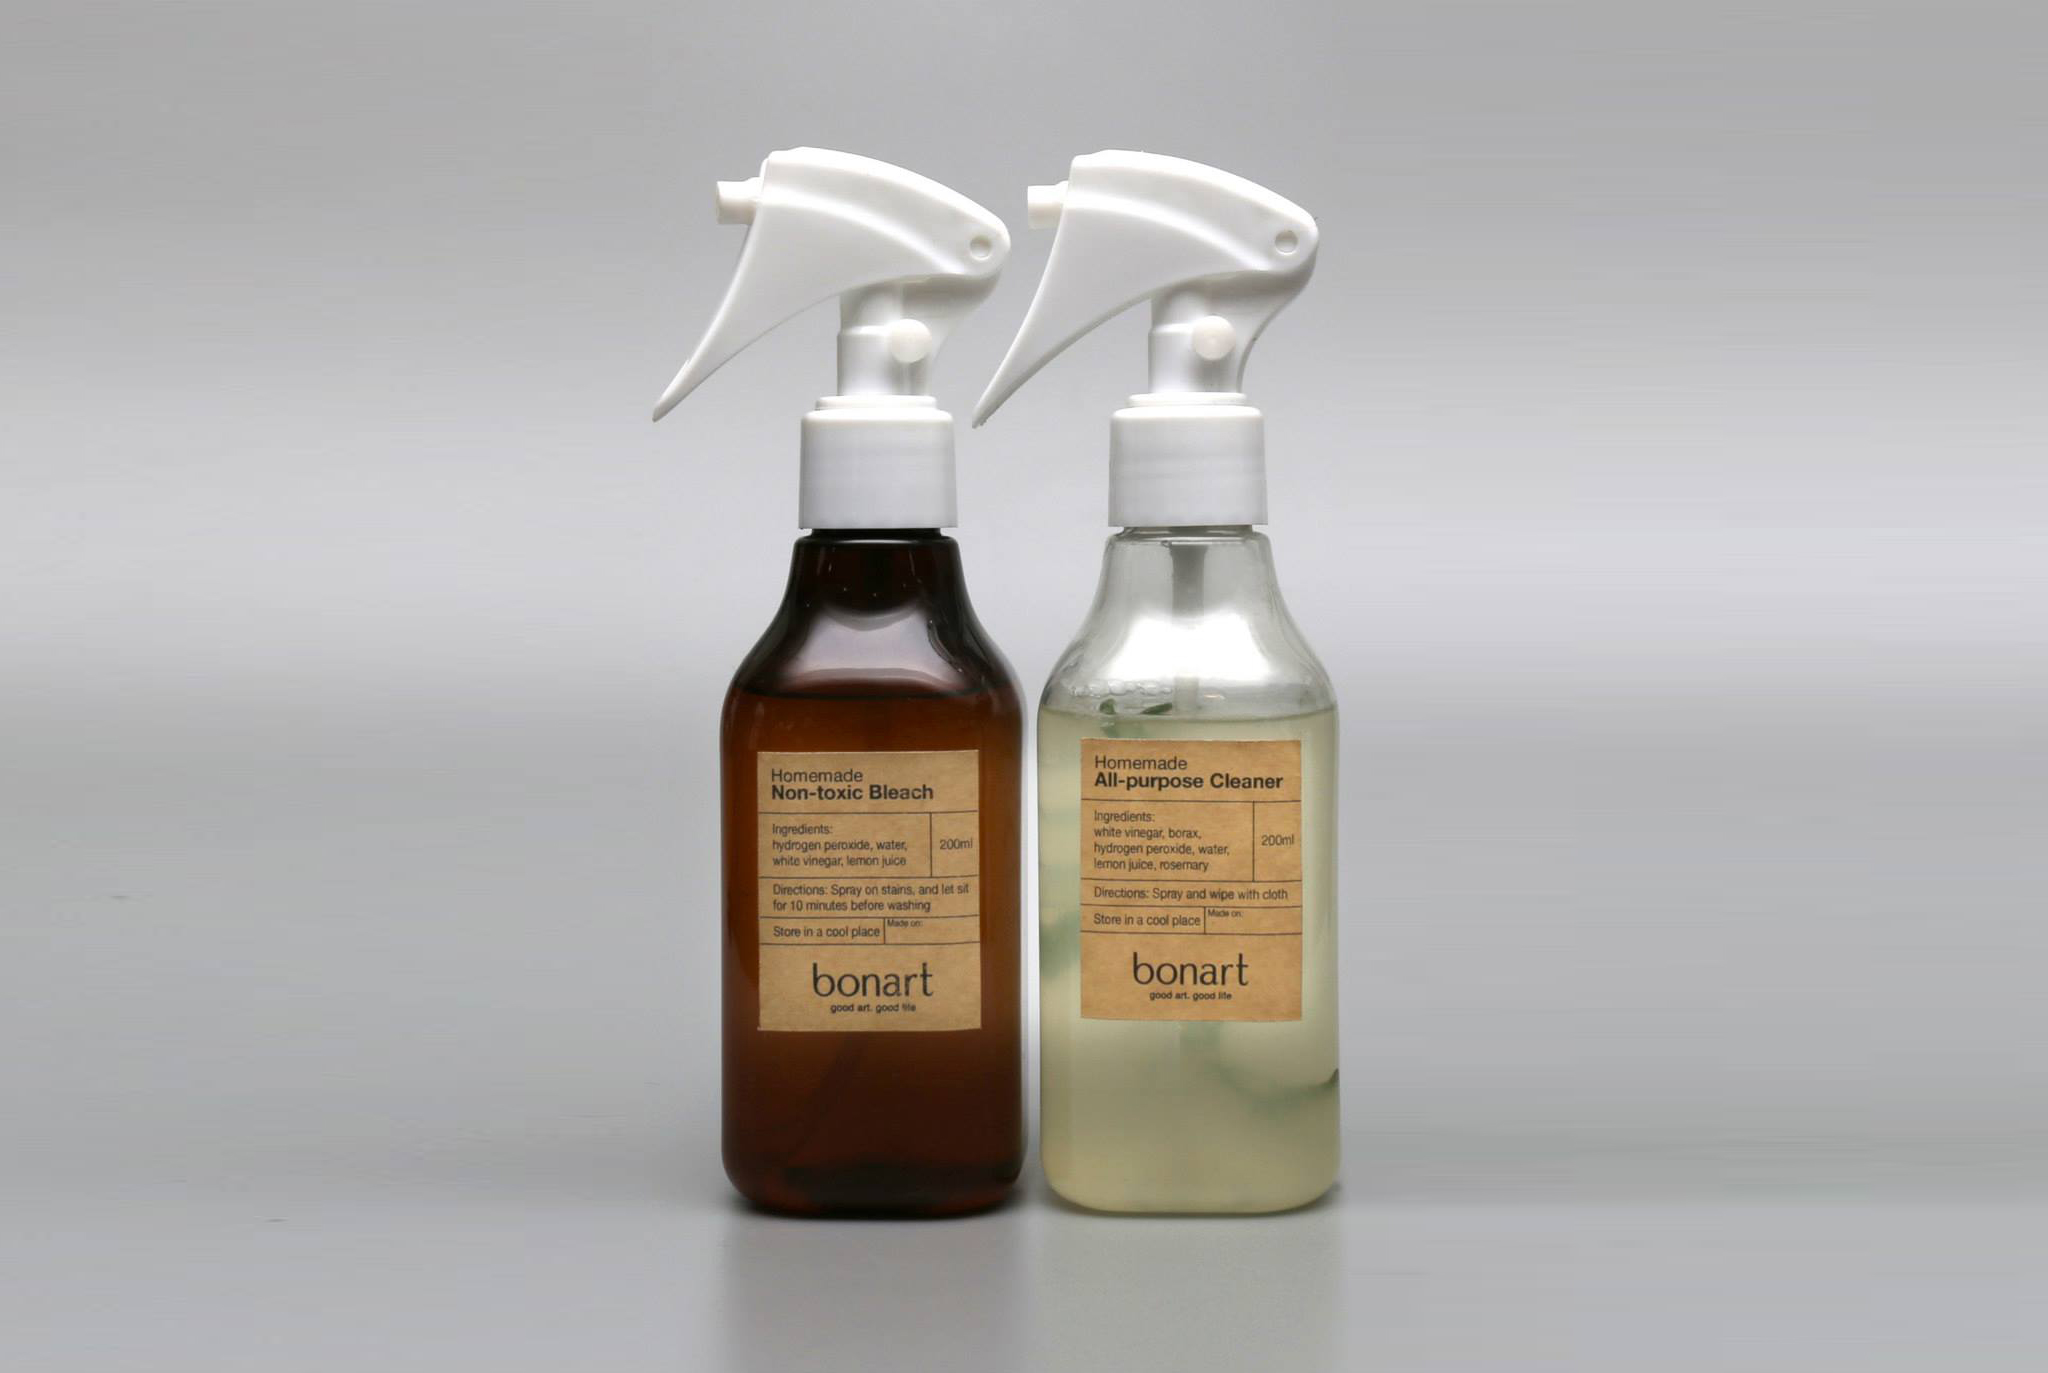 Homemade cleaner and bleach are natural and non-toxic which can be used safely. Enjoy family cleaning time with these eco-friendly cleaners instead of ...